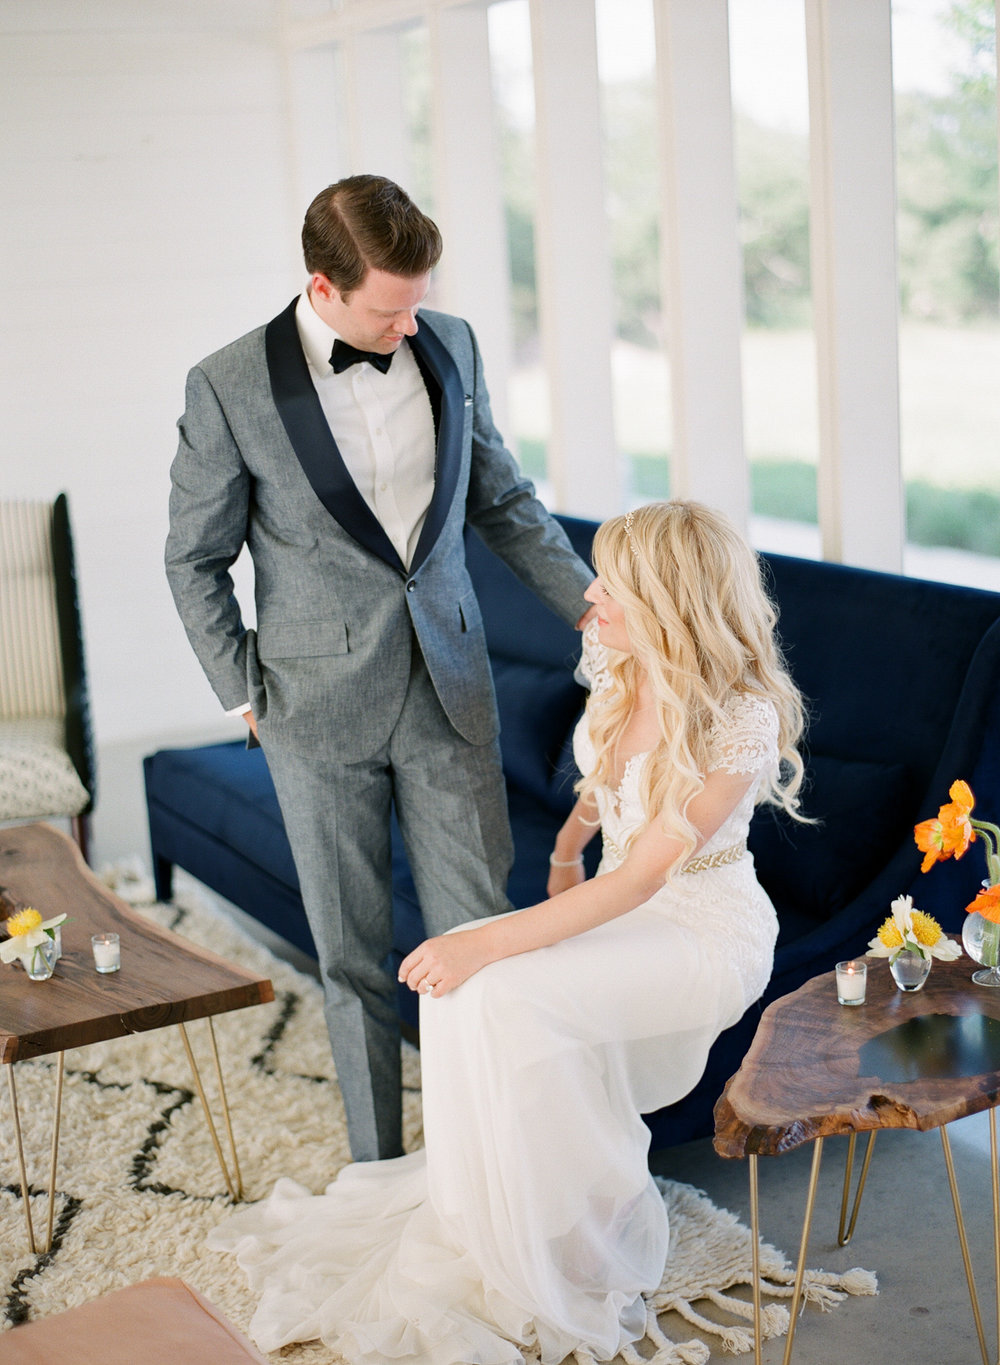 PROSPECT_HOUSE_WEDDING_AUSTIN_TX_BY_MATTHEW_MOORE_PHOTOGRAPHY_00150.jpg